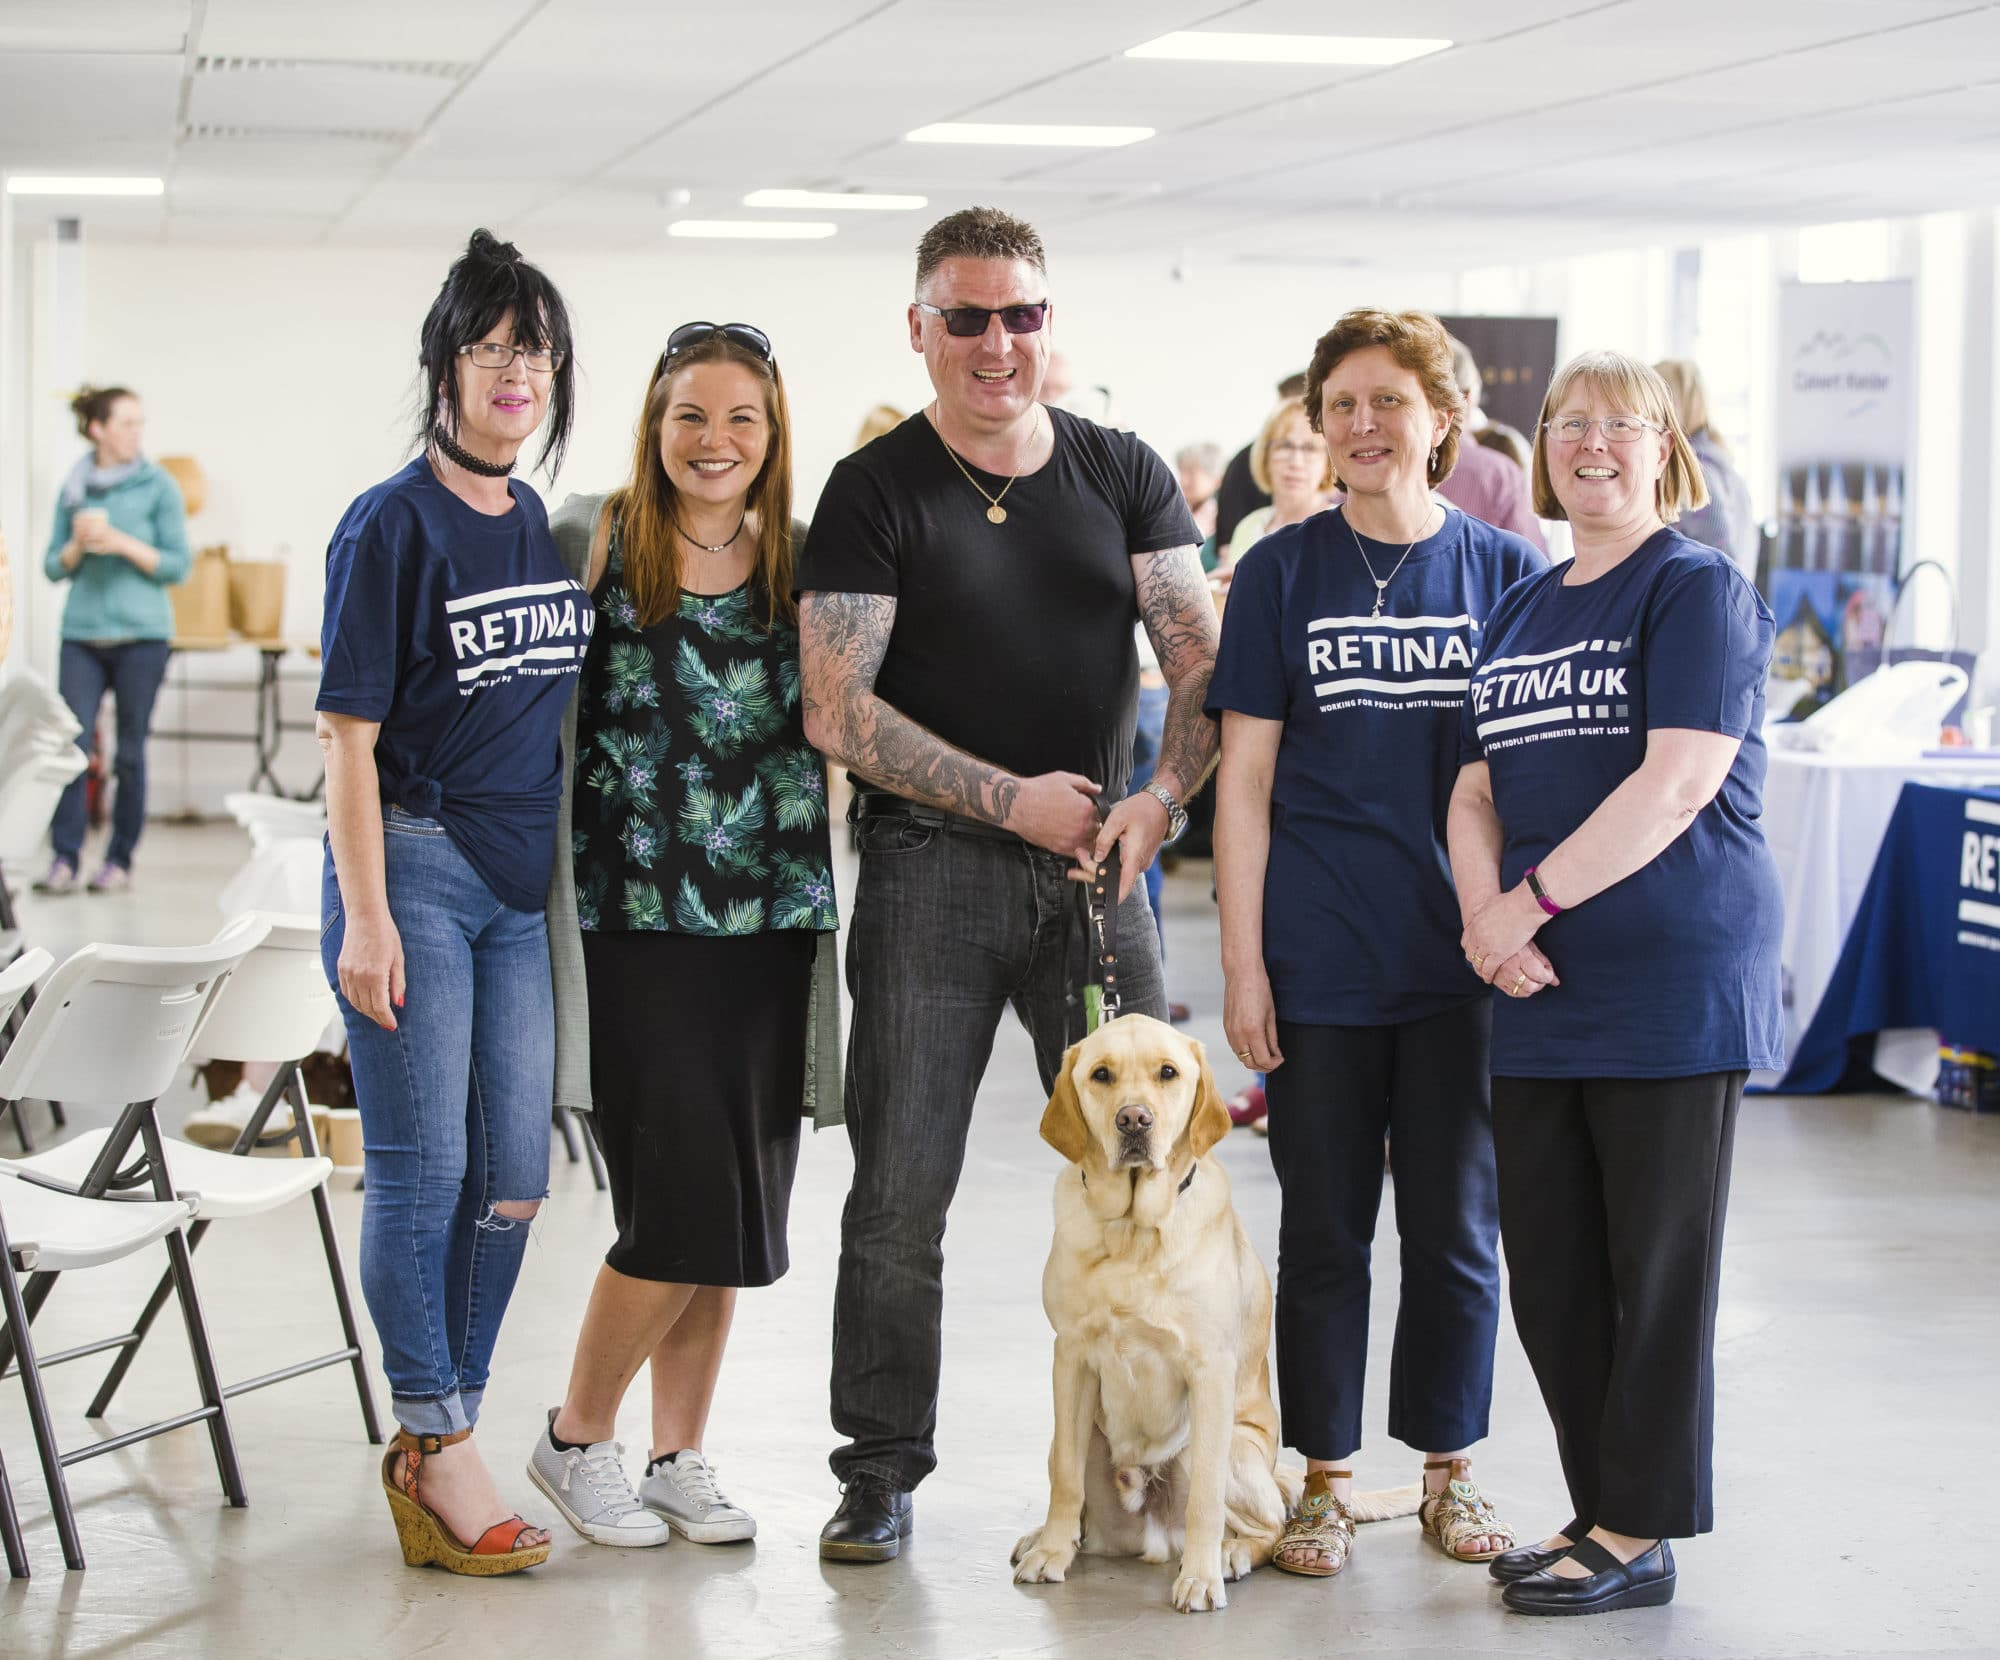 Three Retina UK volunteers with a man, woman and guide dog